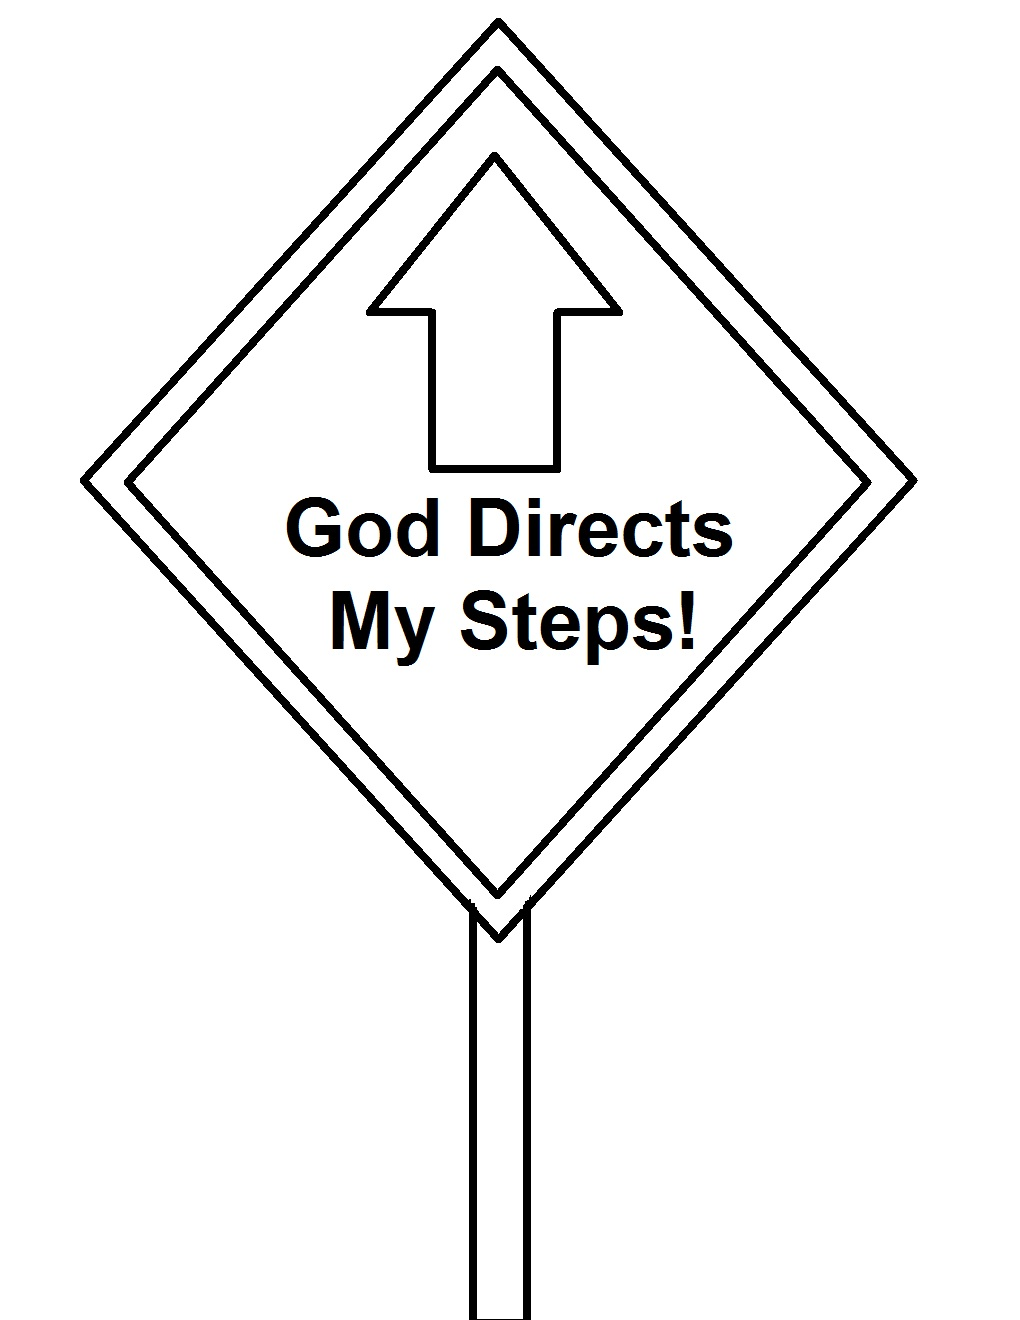 street sign coloring pages - photo#18